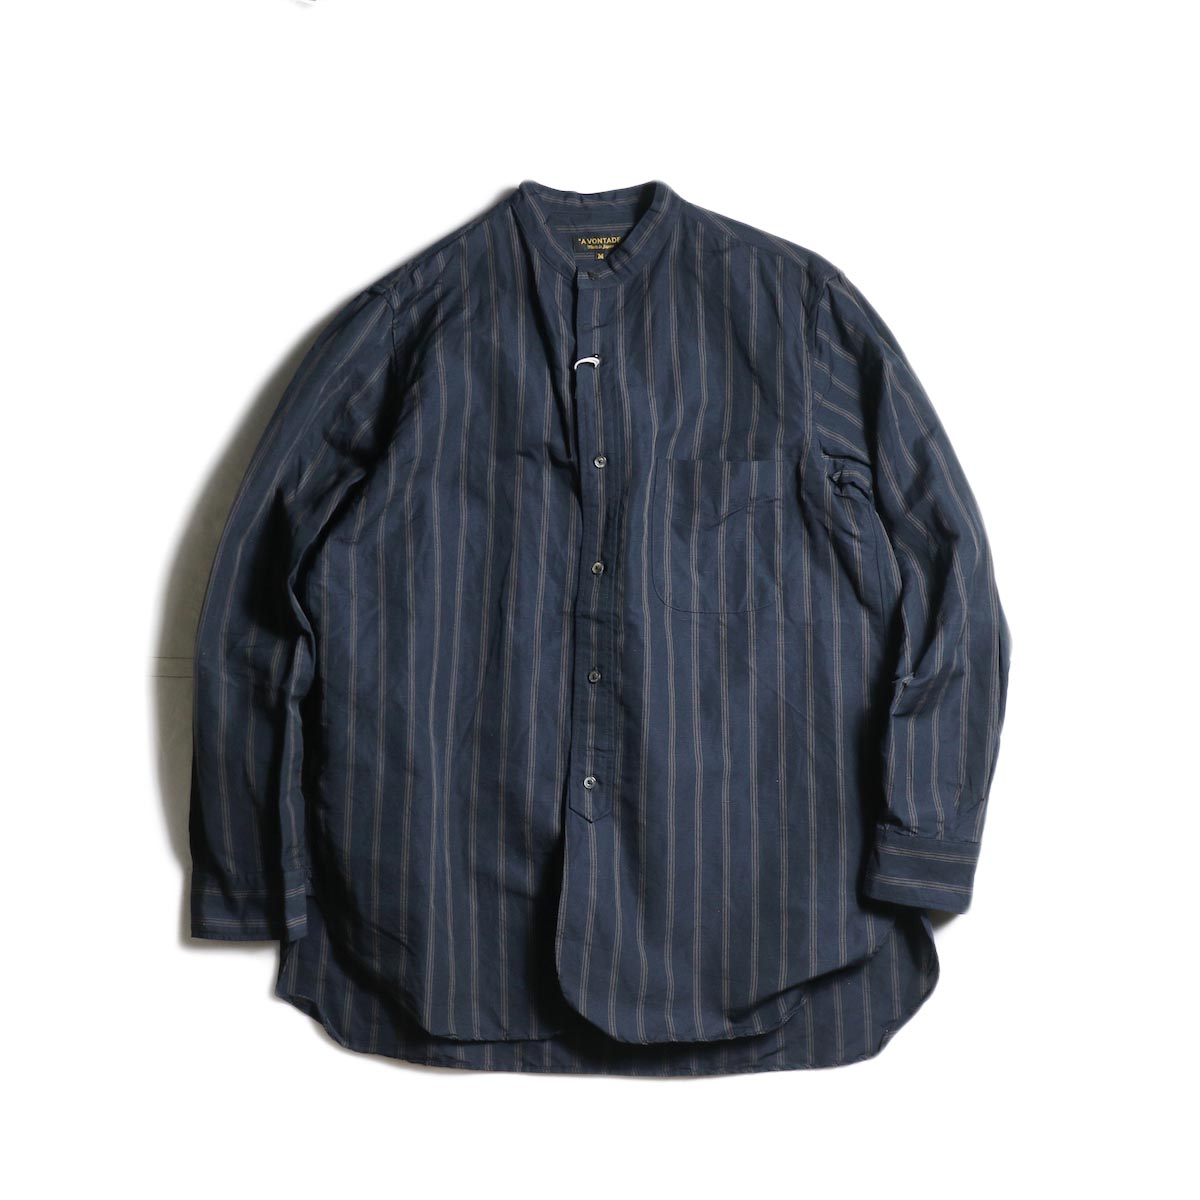 A VONTADE / Banded Collar Shirts (Black Stripe)